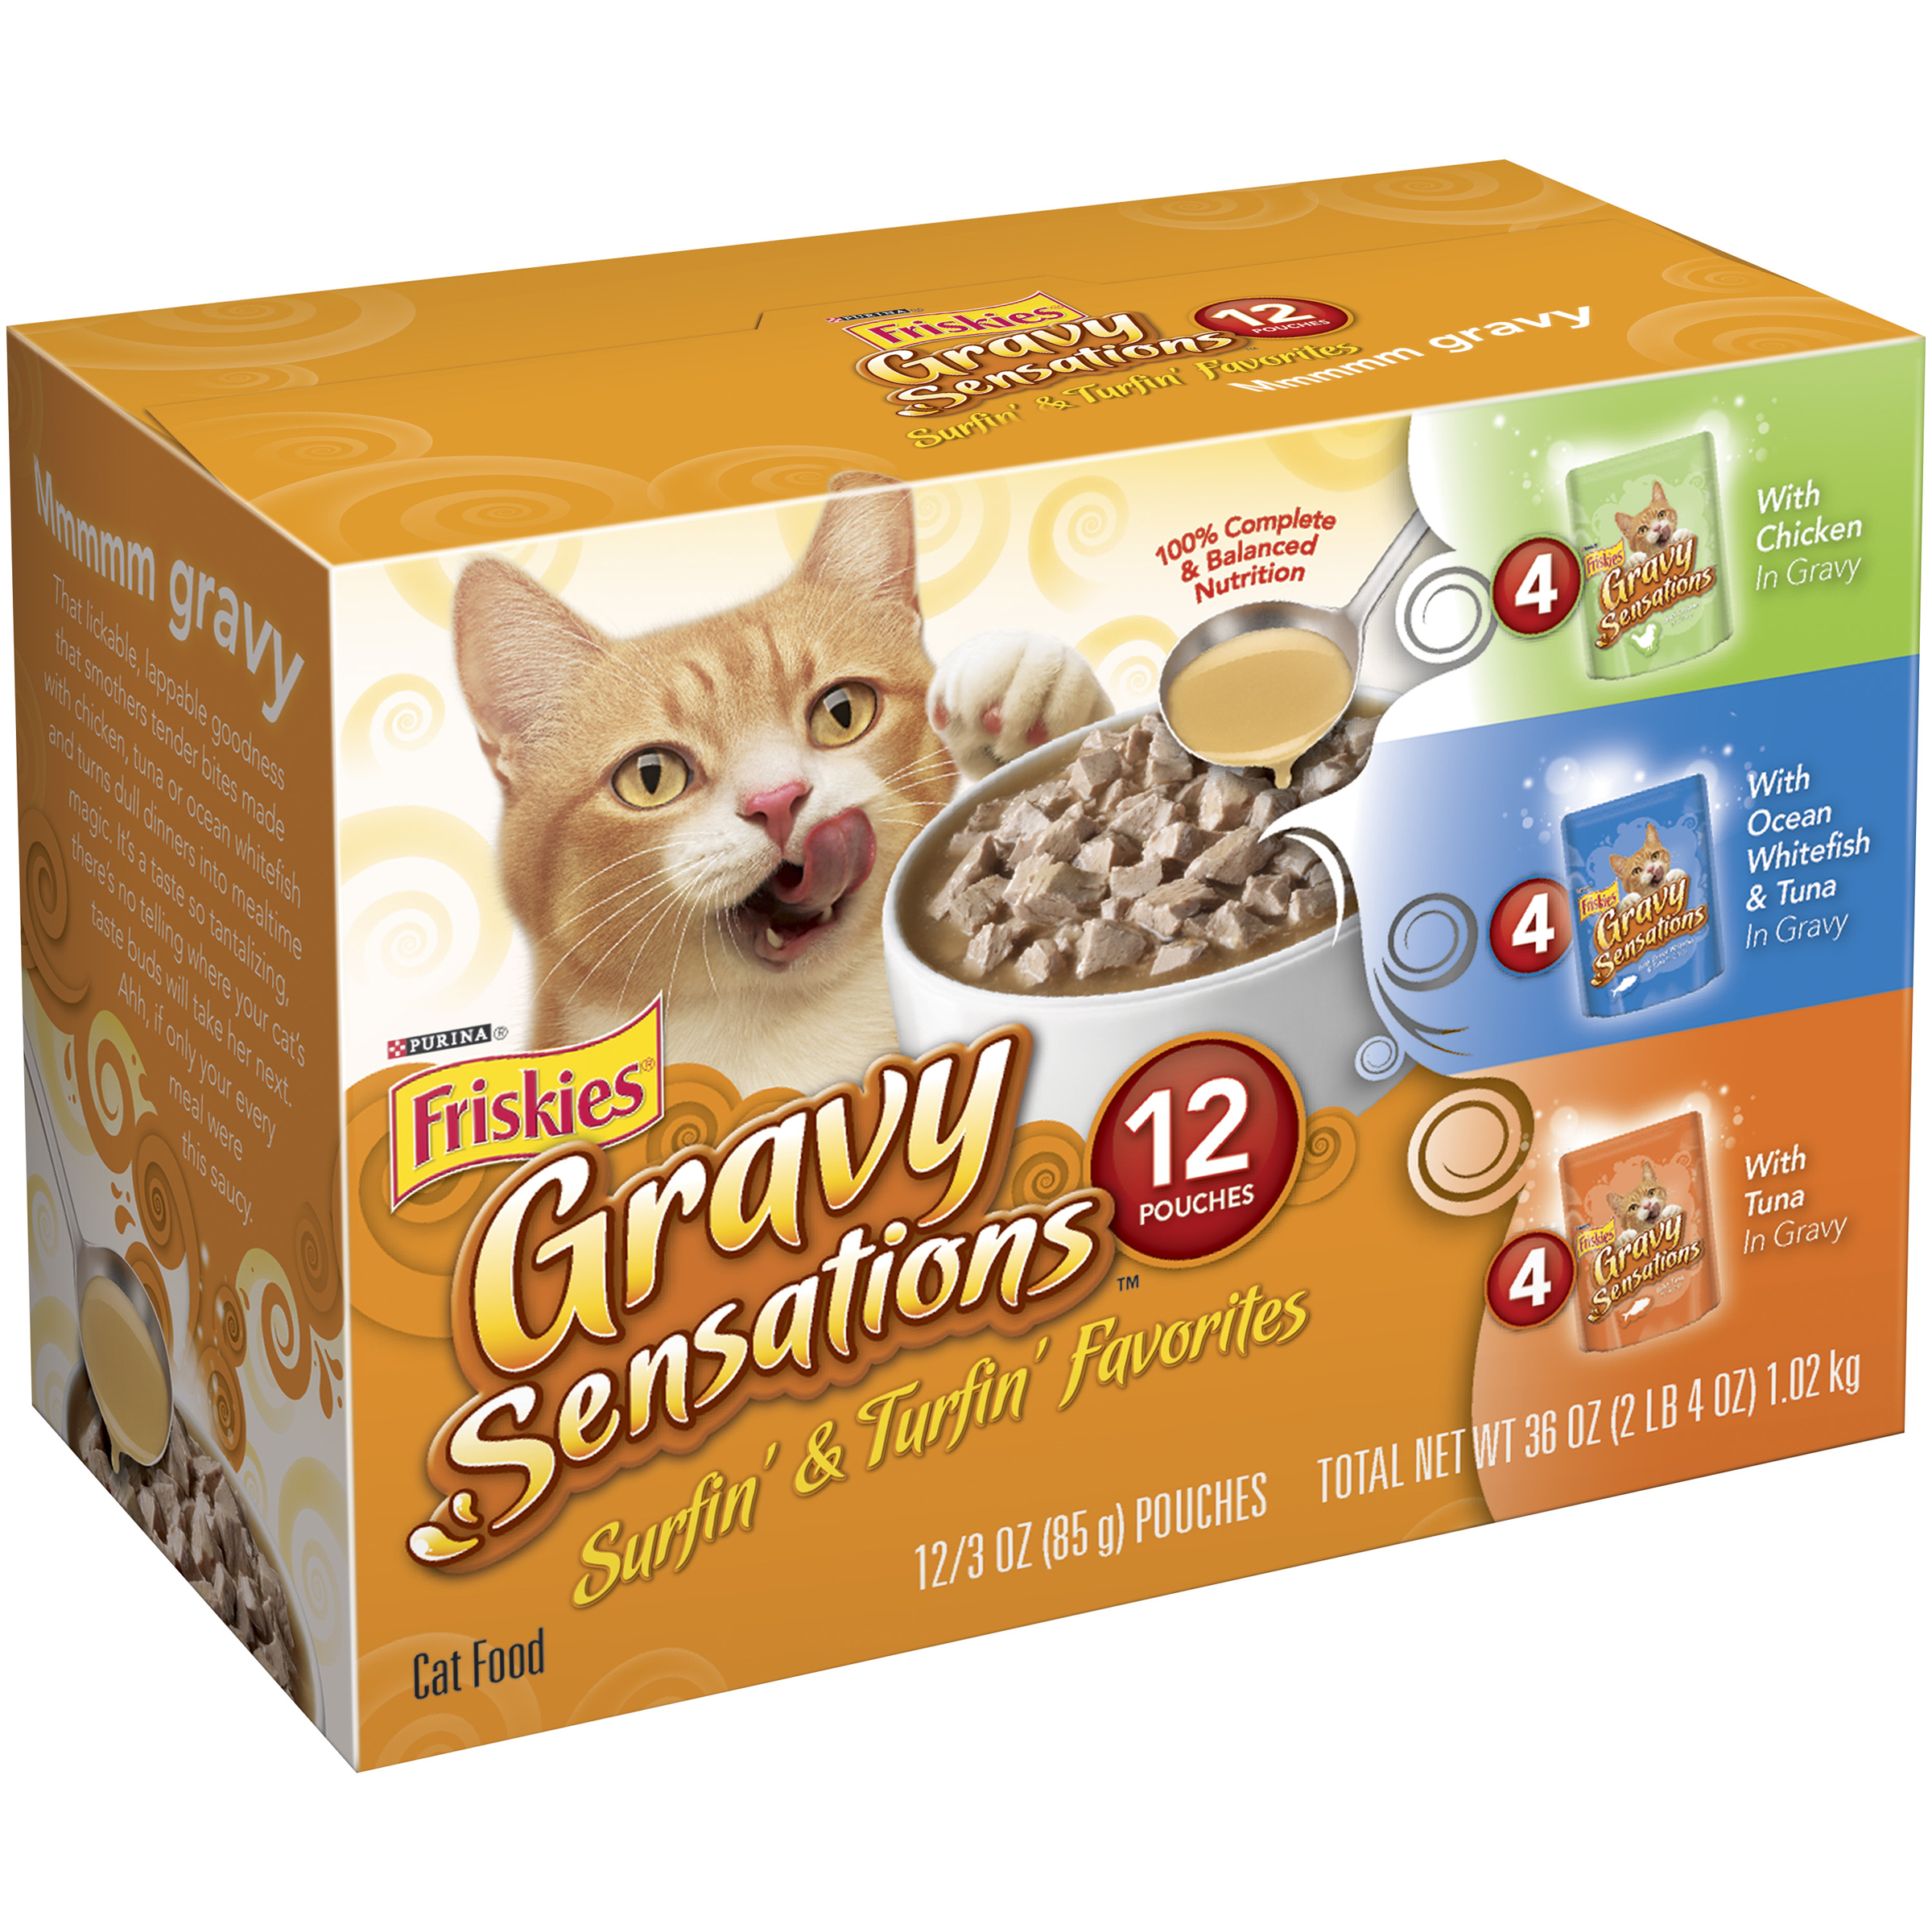 Purina Friskies Gravy Sensations Surfin' & Turfin' Favorites Cat Food Variety Pack 12-3 oz. Pouches